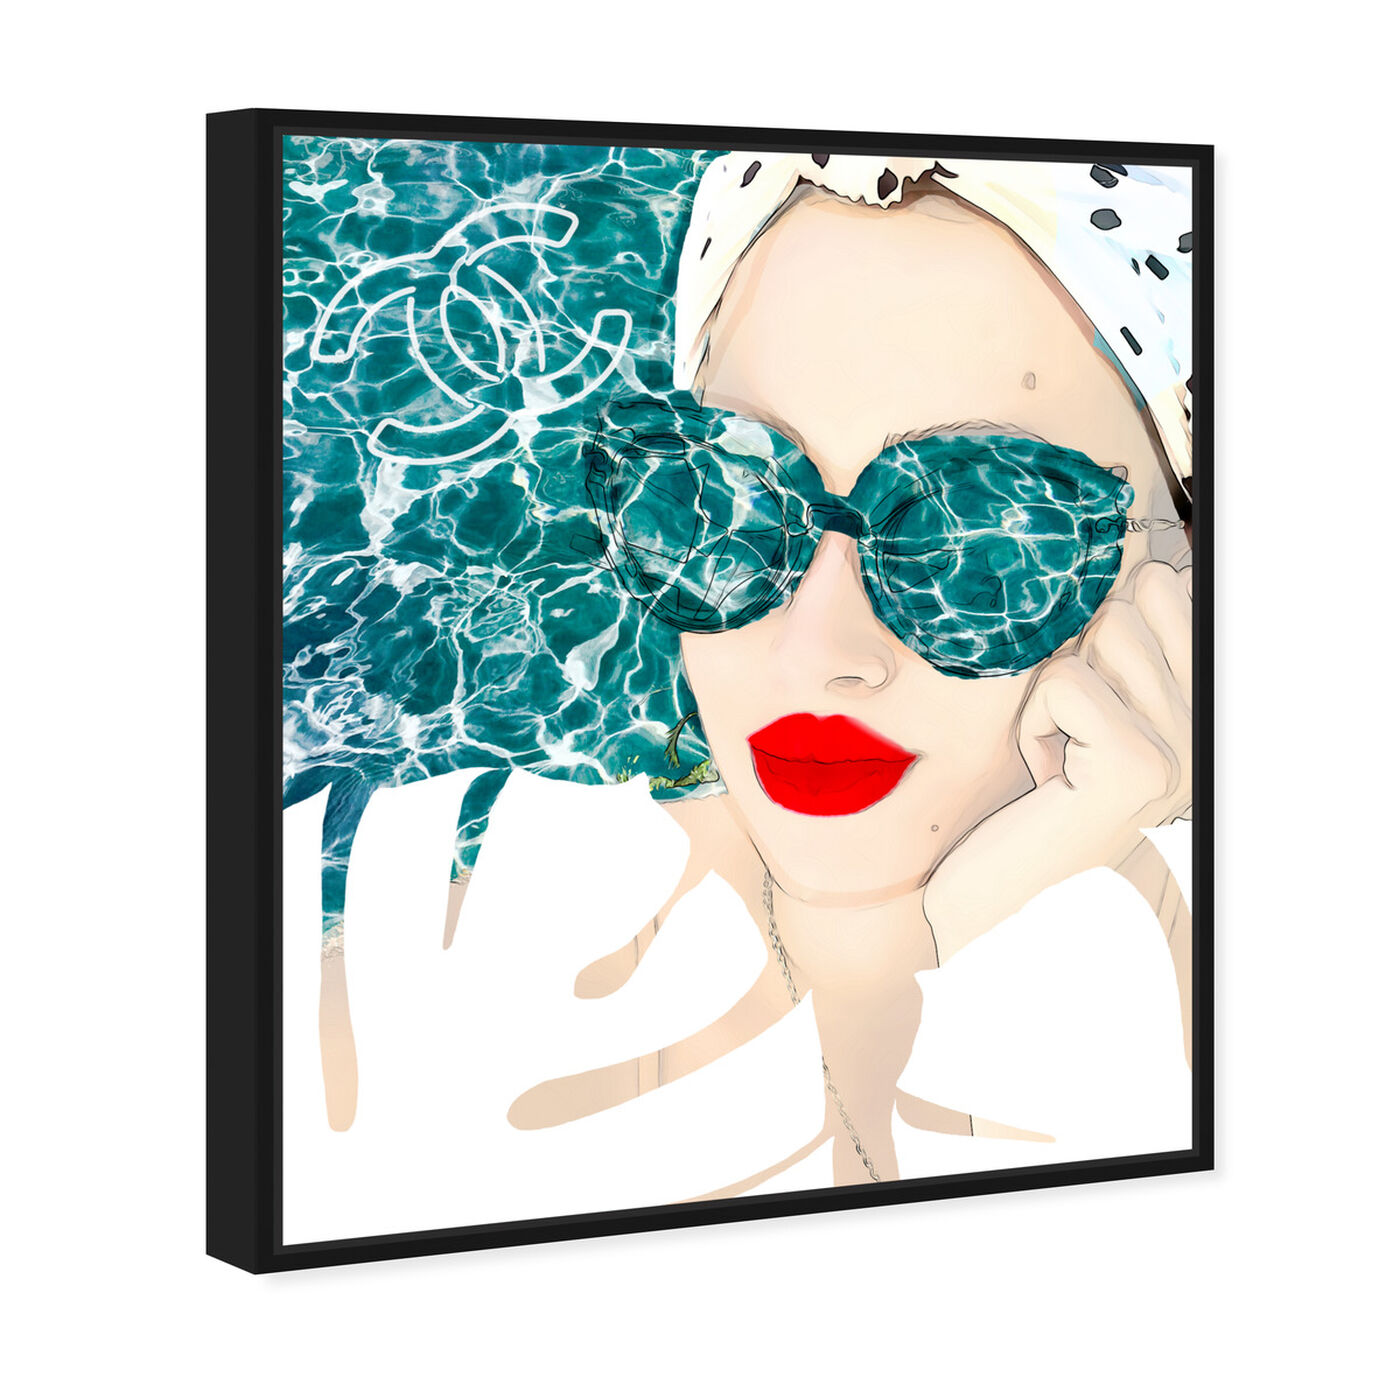 Angled view of MariPily featuring fashion and glam and portraits art.